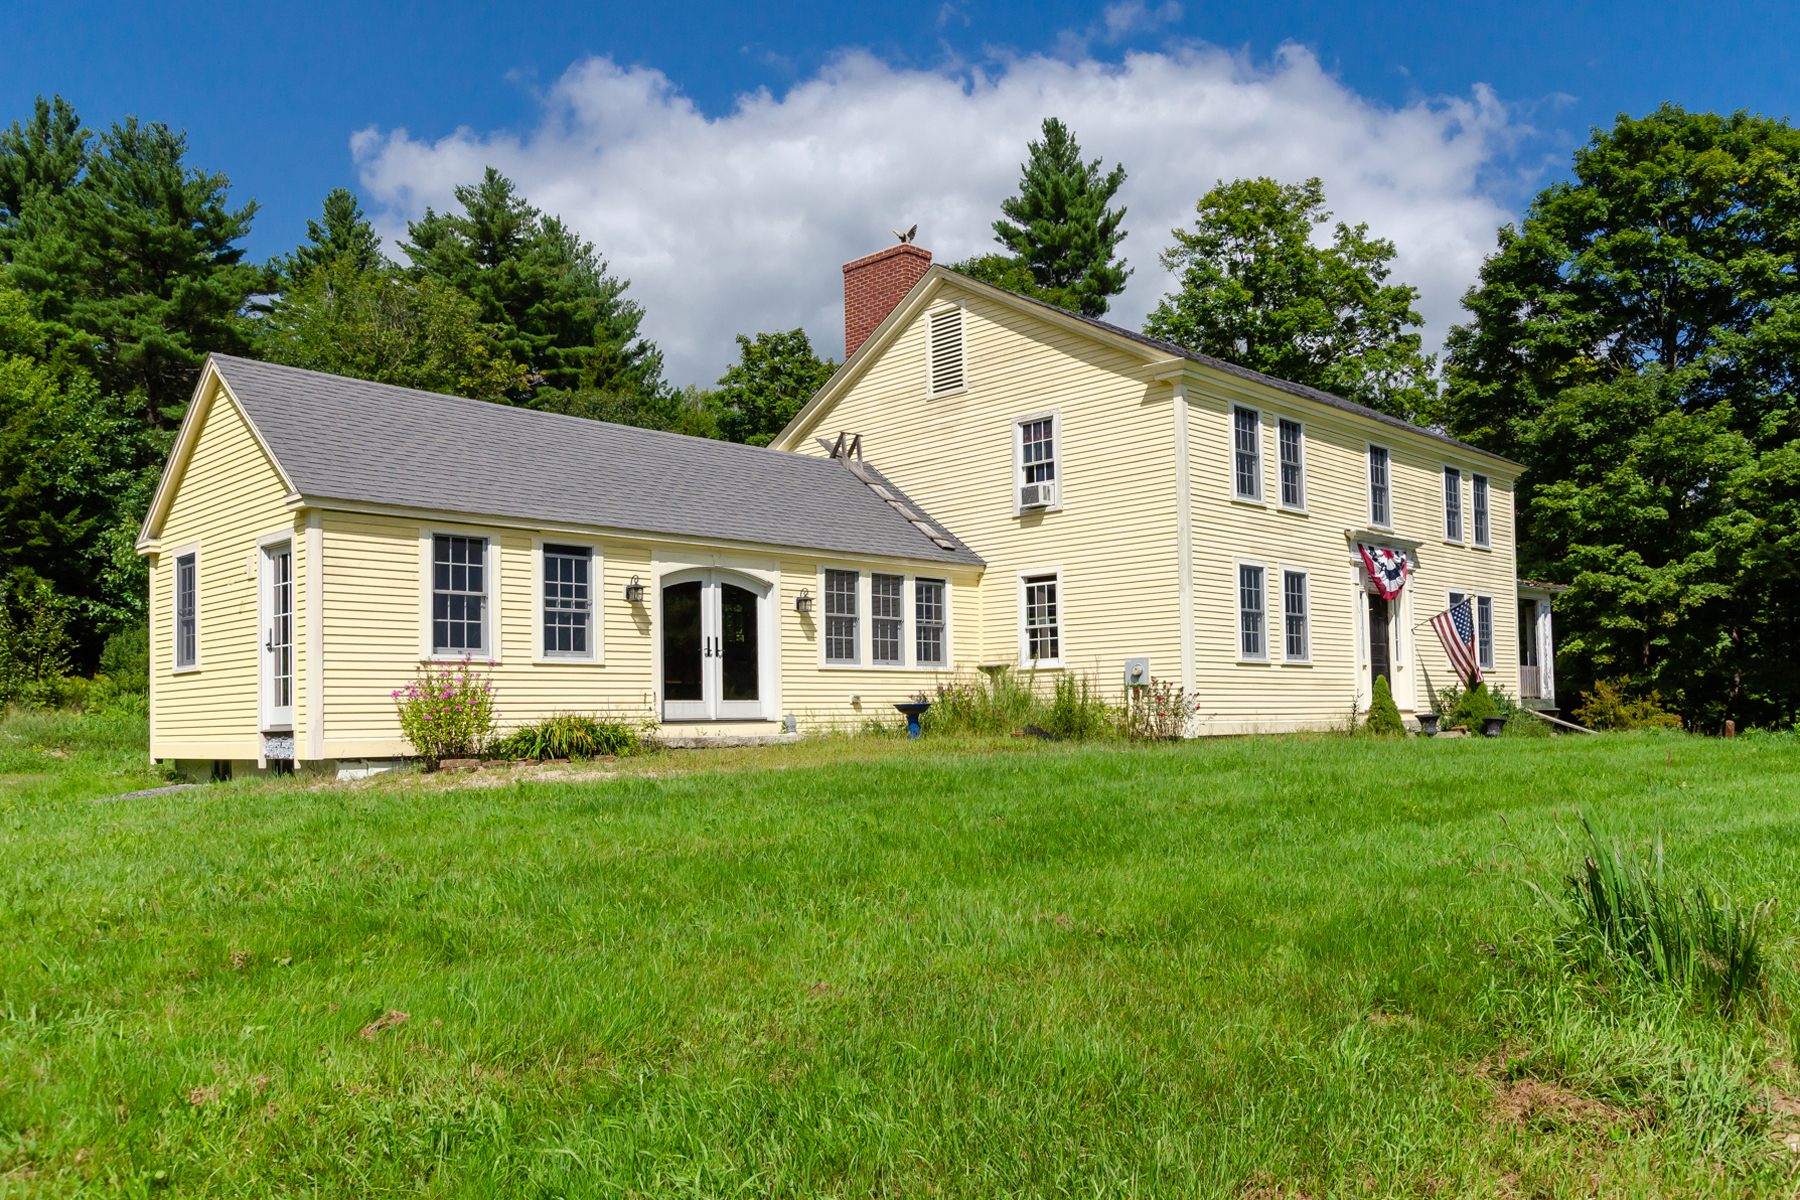 Single Family Homes for Active at Circa 1780 colonial 114 Charlestown Rd Acworth, New Hampshire 03601 United States